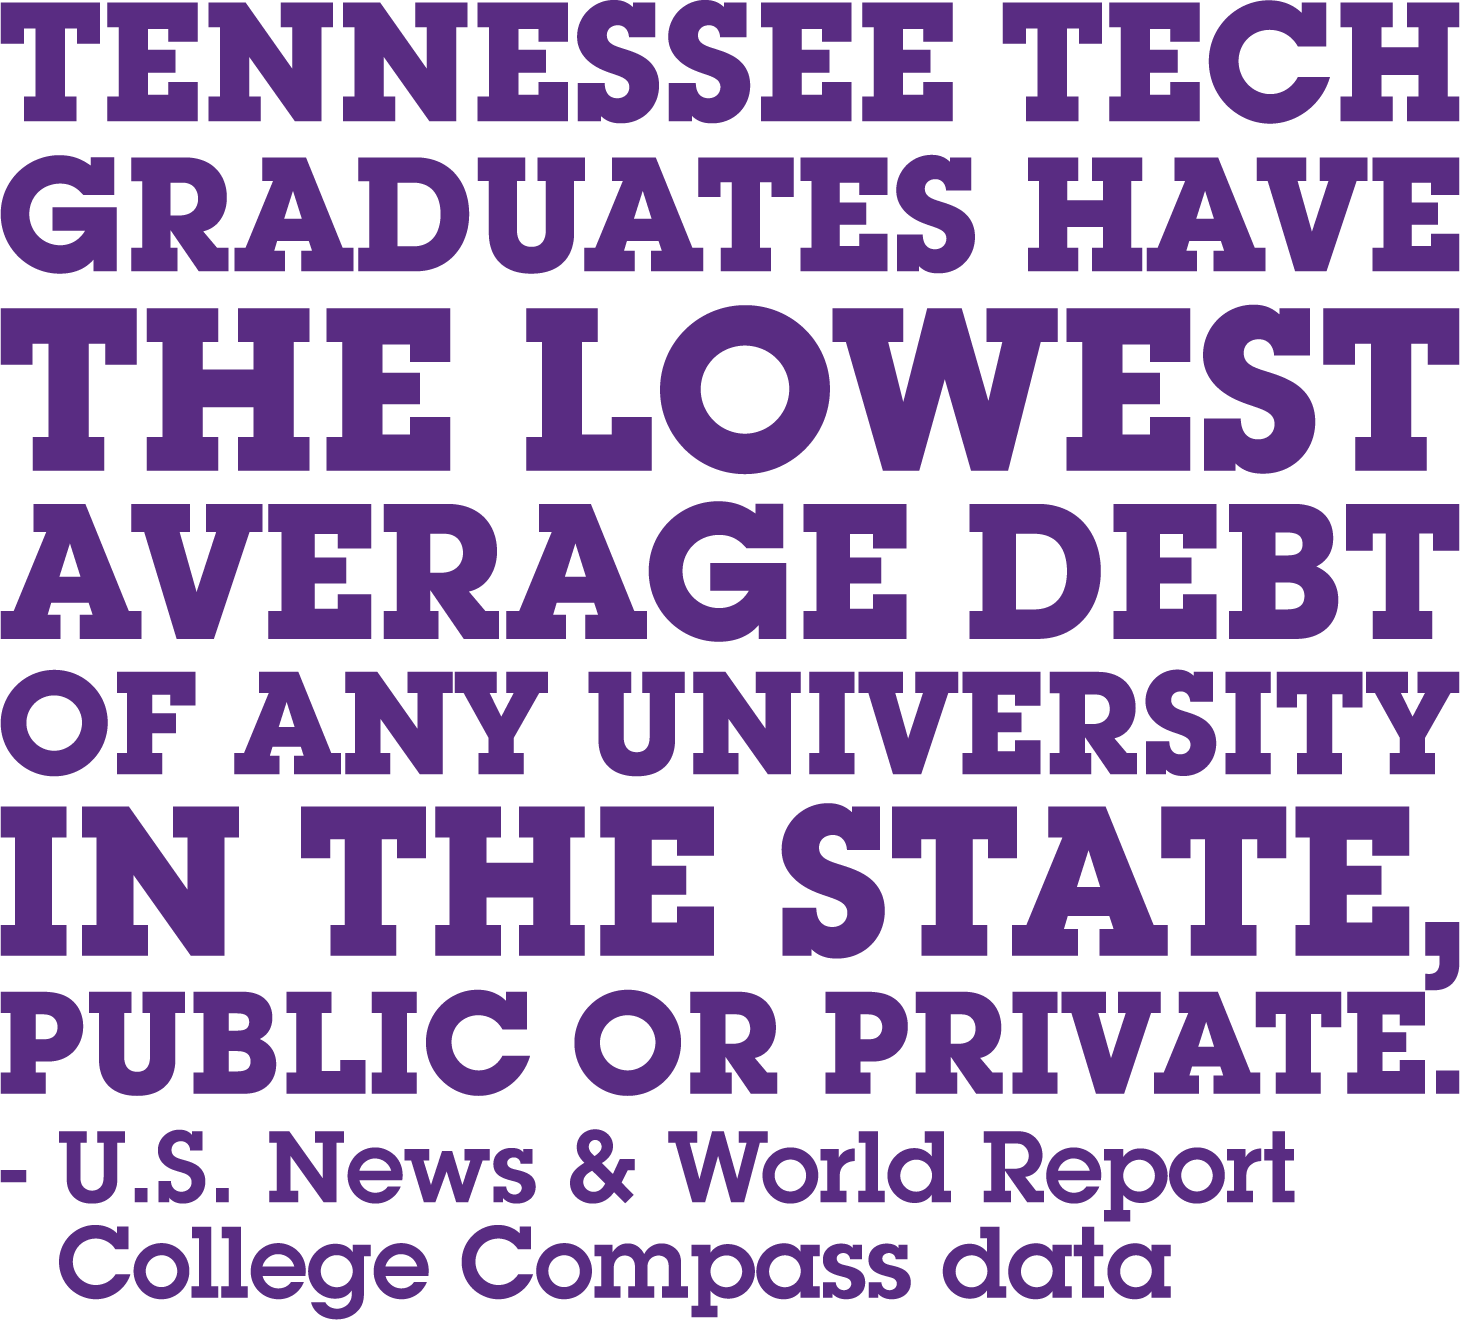 Tennessee Tech graduates have the lowerst average debt of any university in the state, public or private. - US News & World Report - College Compass Data